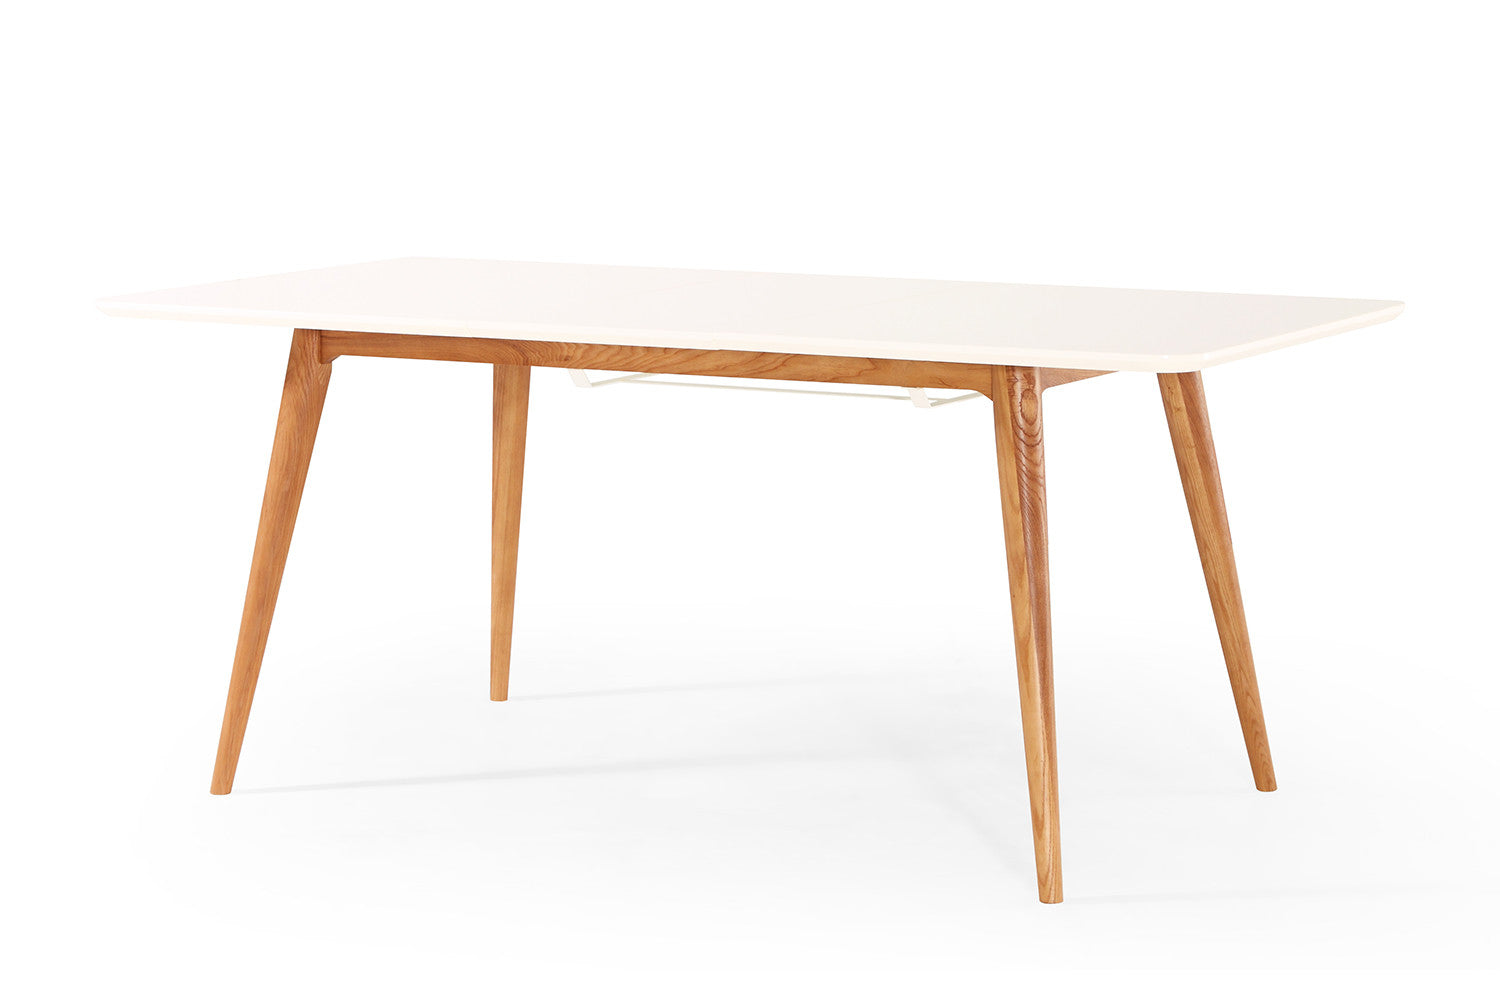 Table salle a manger scandinave extensible for Table scandinave extensible